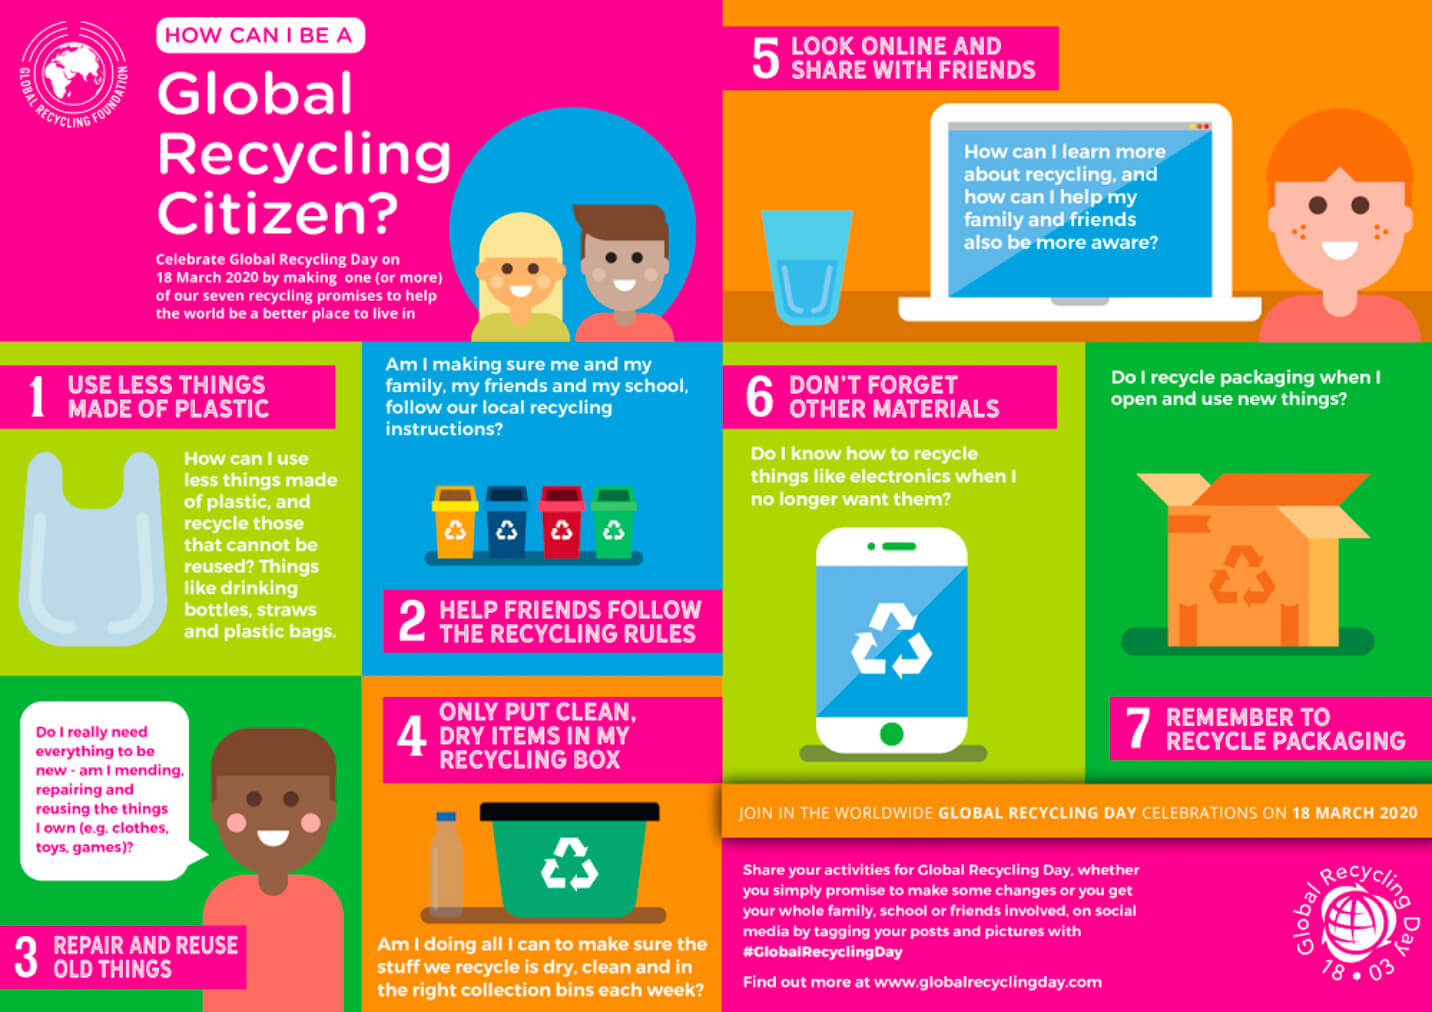 Global Recycling Citizen